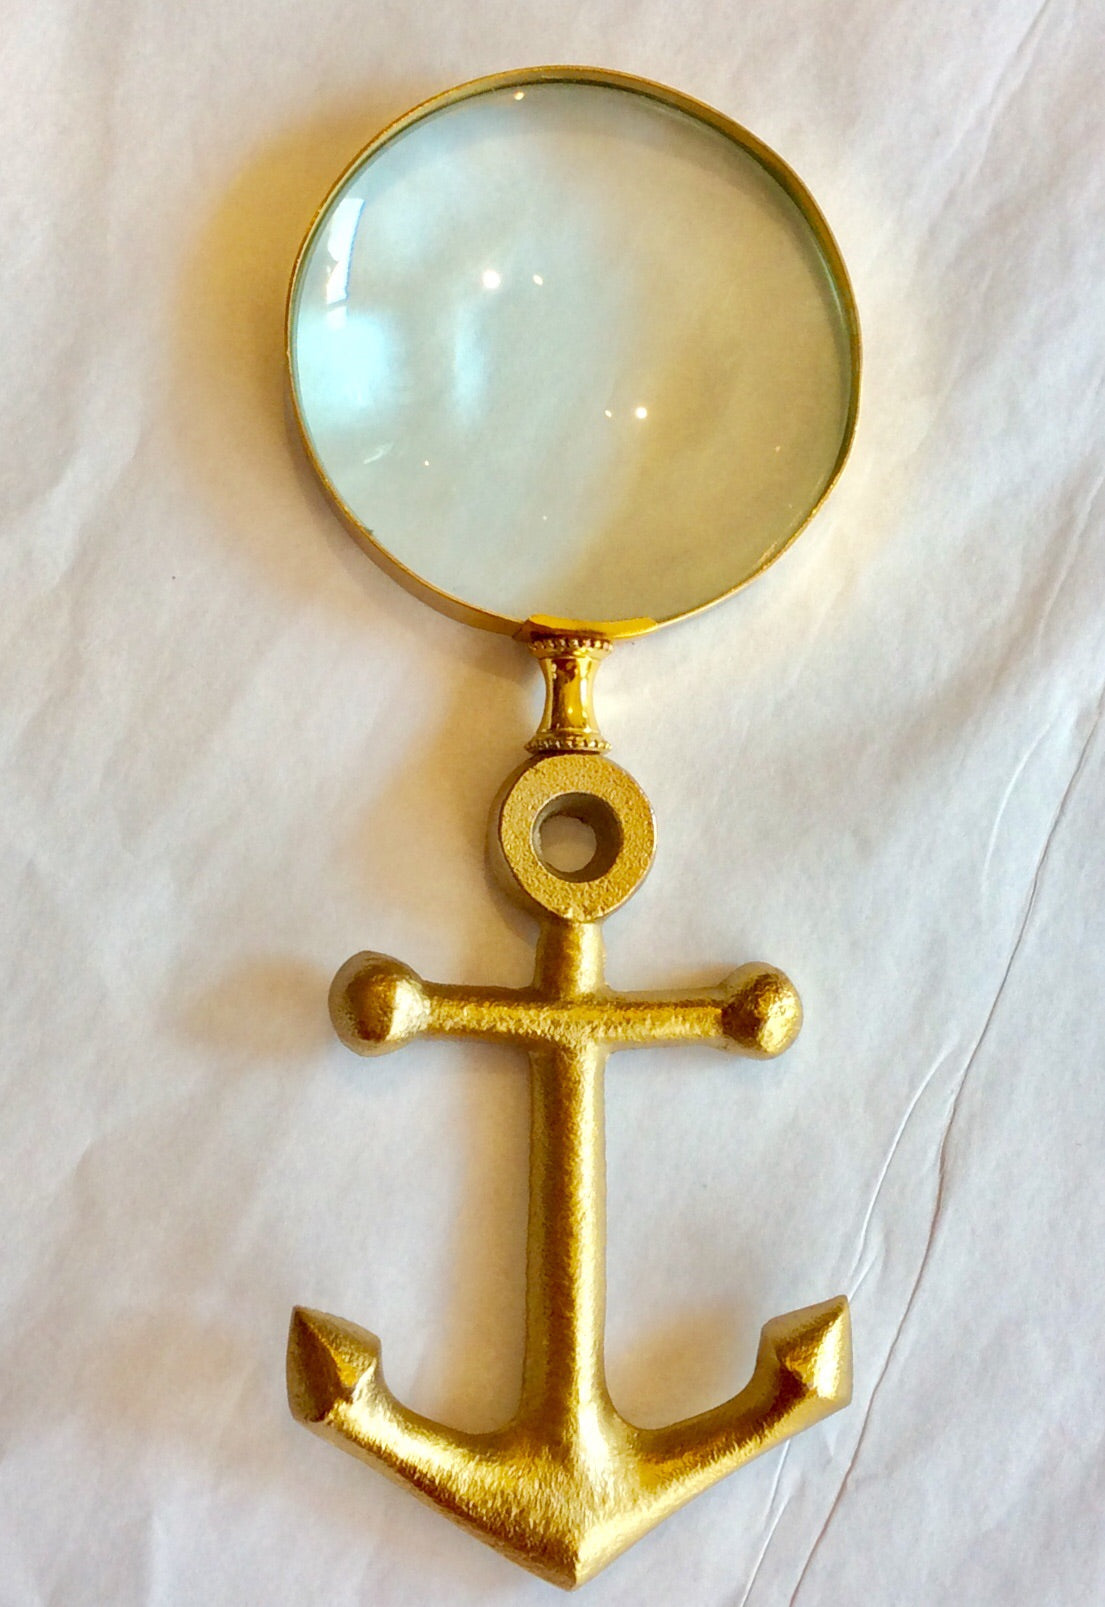 Magnifying Glass, Anchor Handle